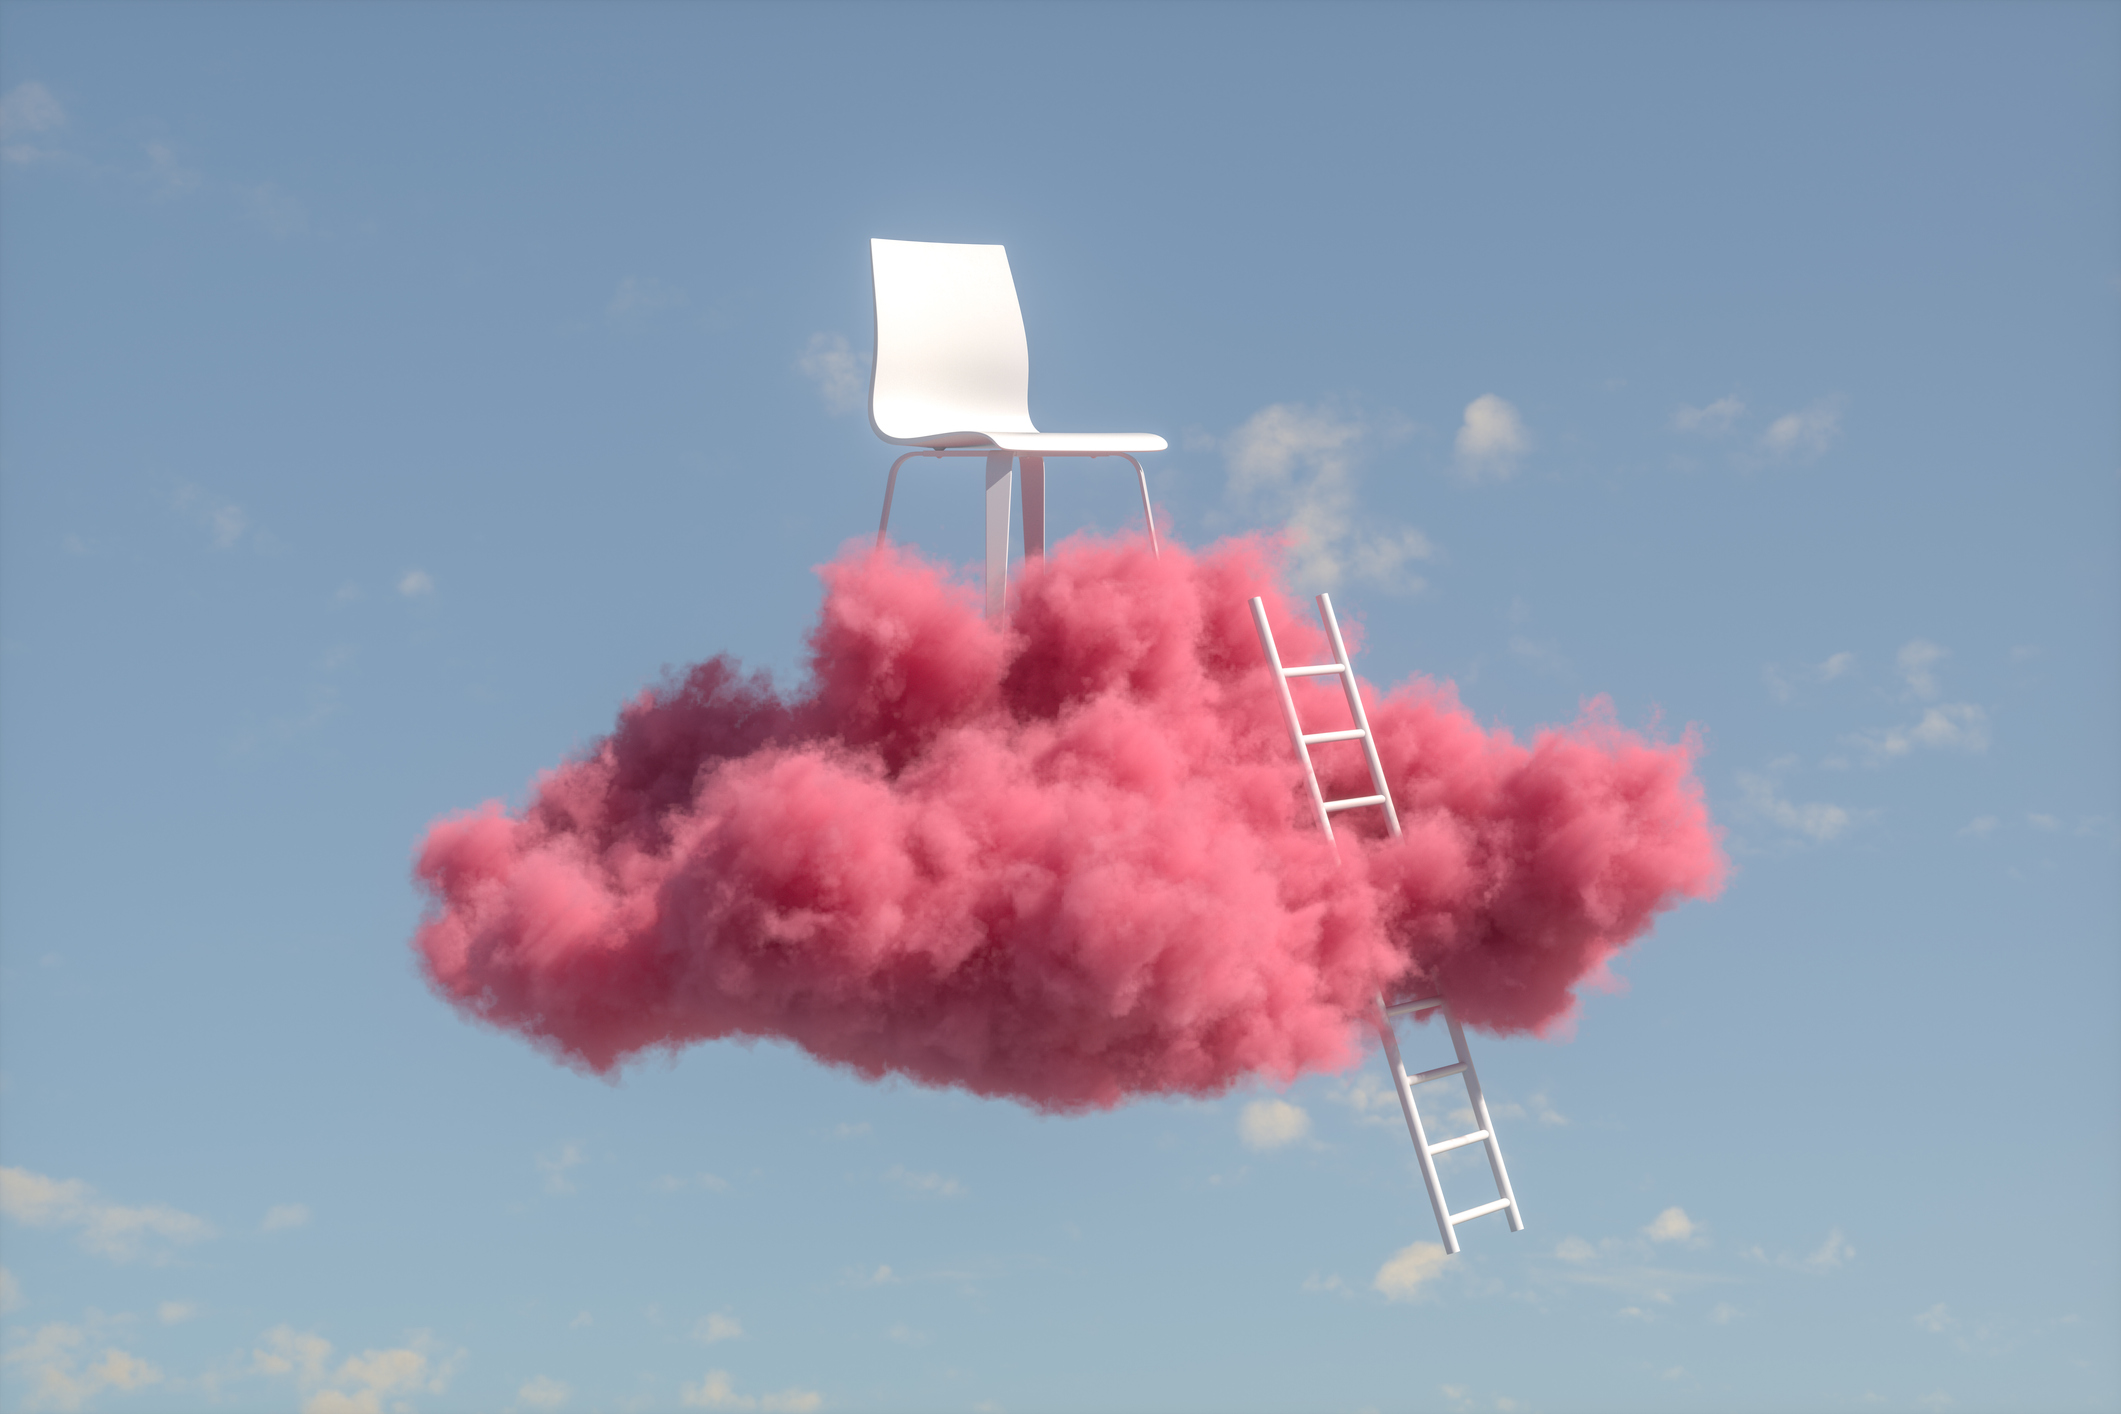 A fluffy pink cloud hovers against a blue sky. Atop the cloud is a white chair, and leaning against the cloud is a white ladder leading to the chair.